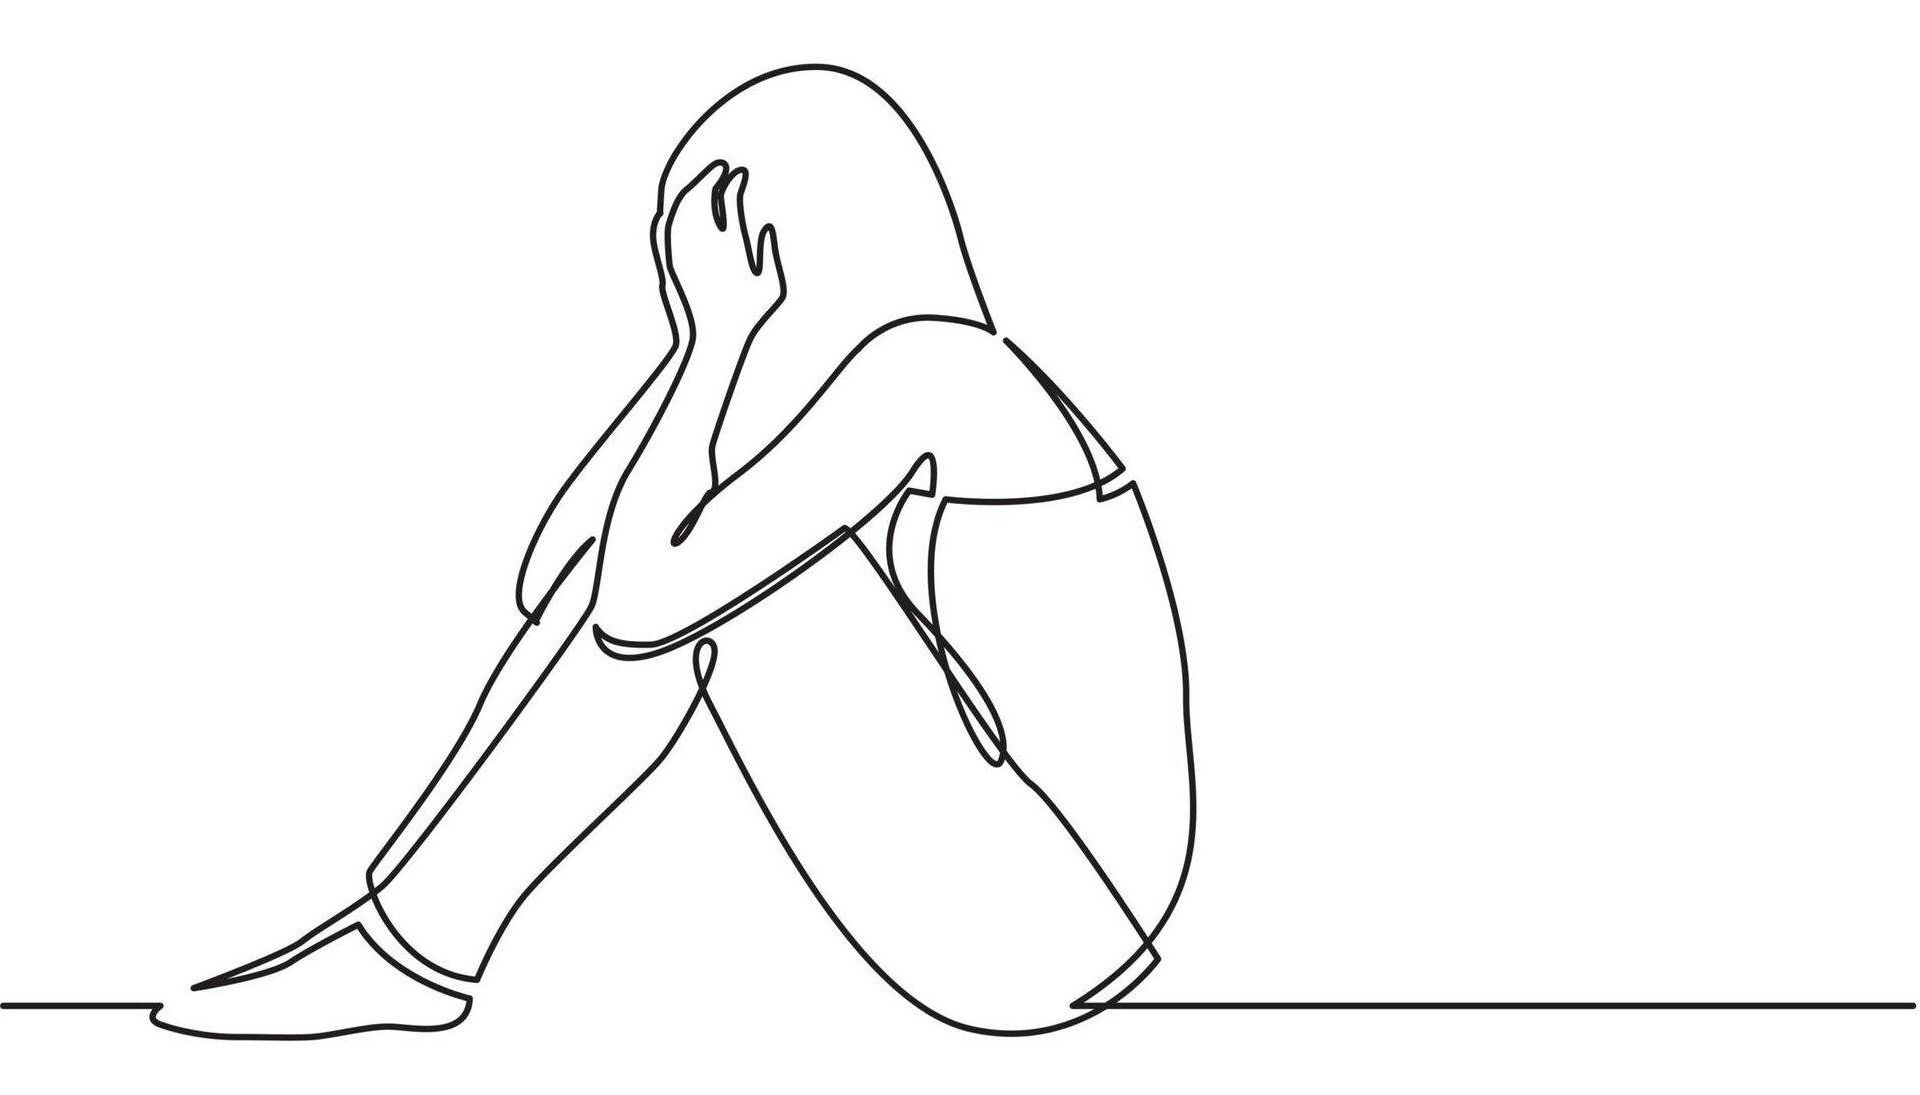 Continuous line drawing of woman sitting on floor in despair. Suicide cluster, Rewire, PBS